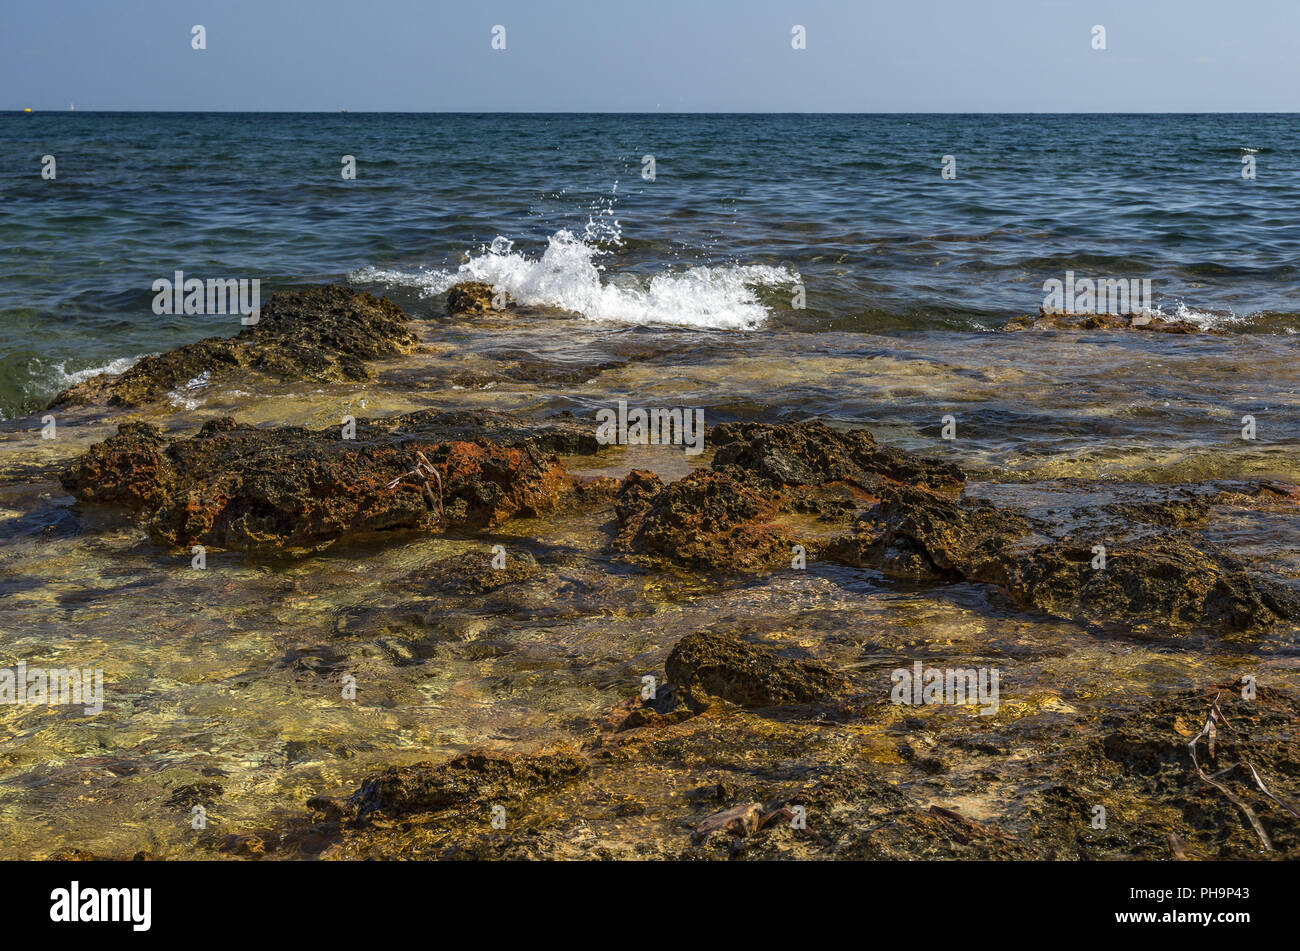 seaboard stones sea waves - Stock Image